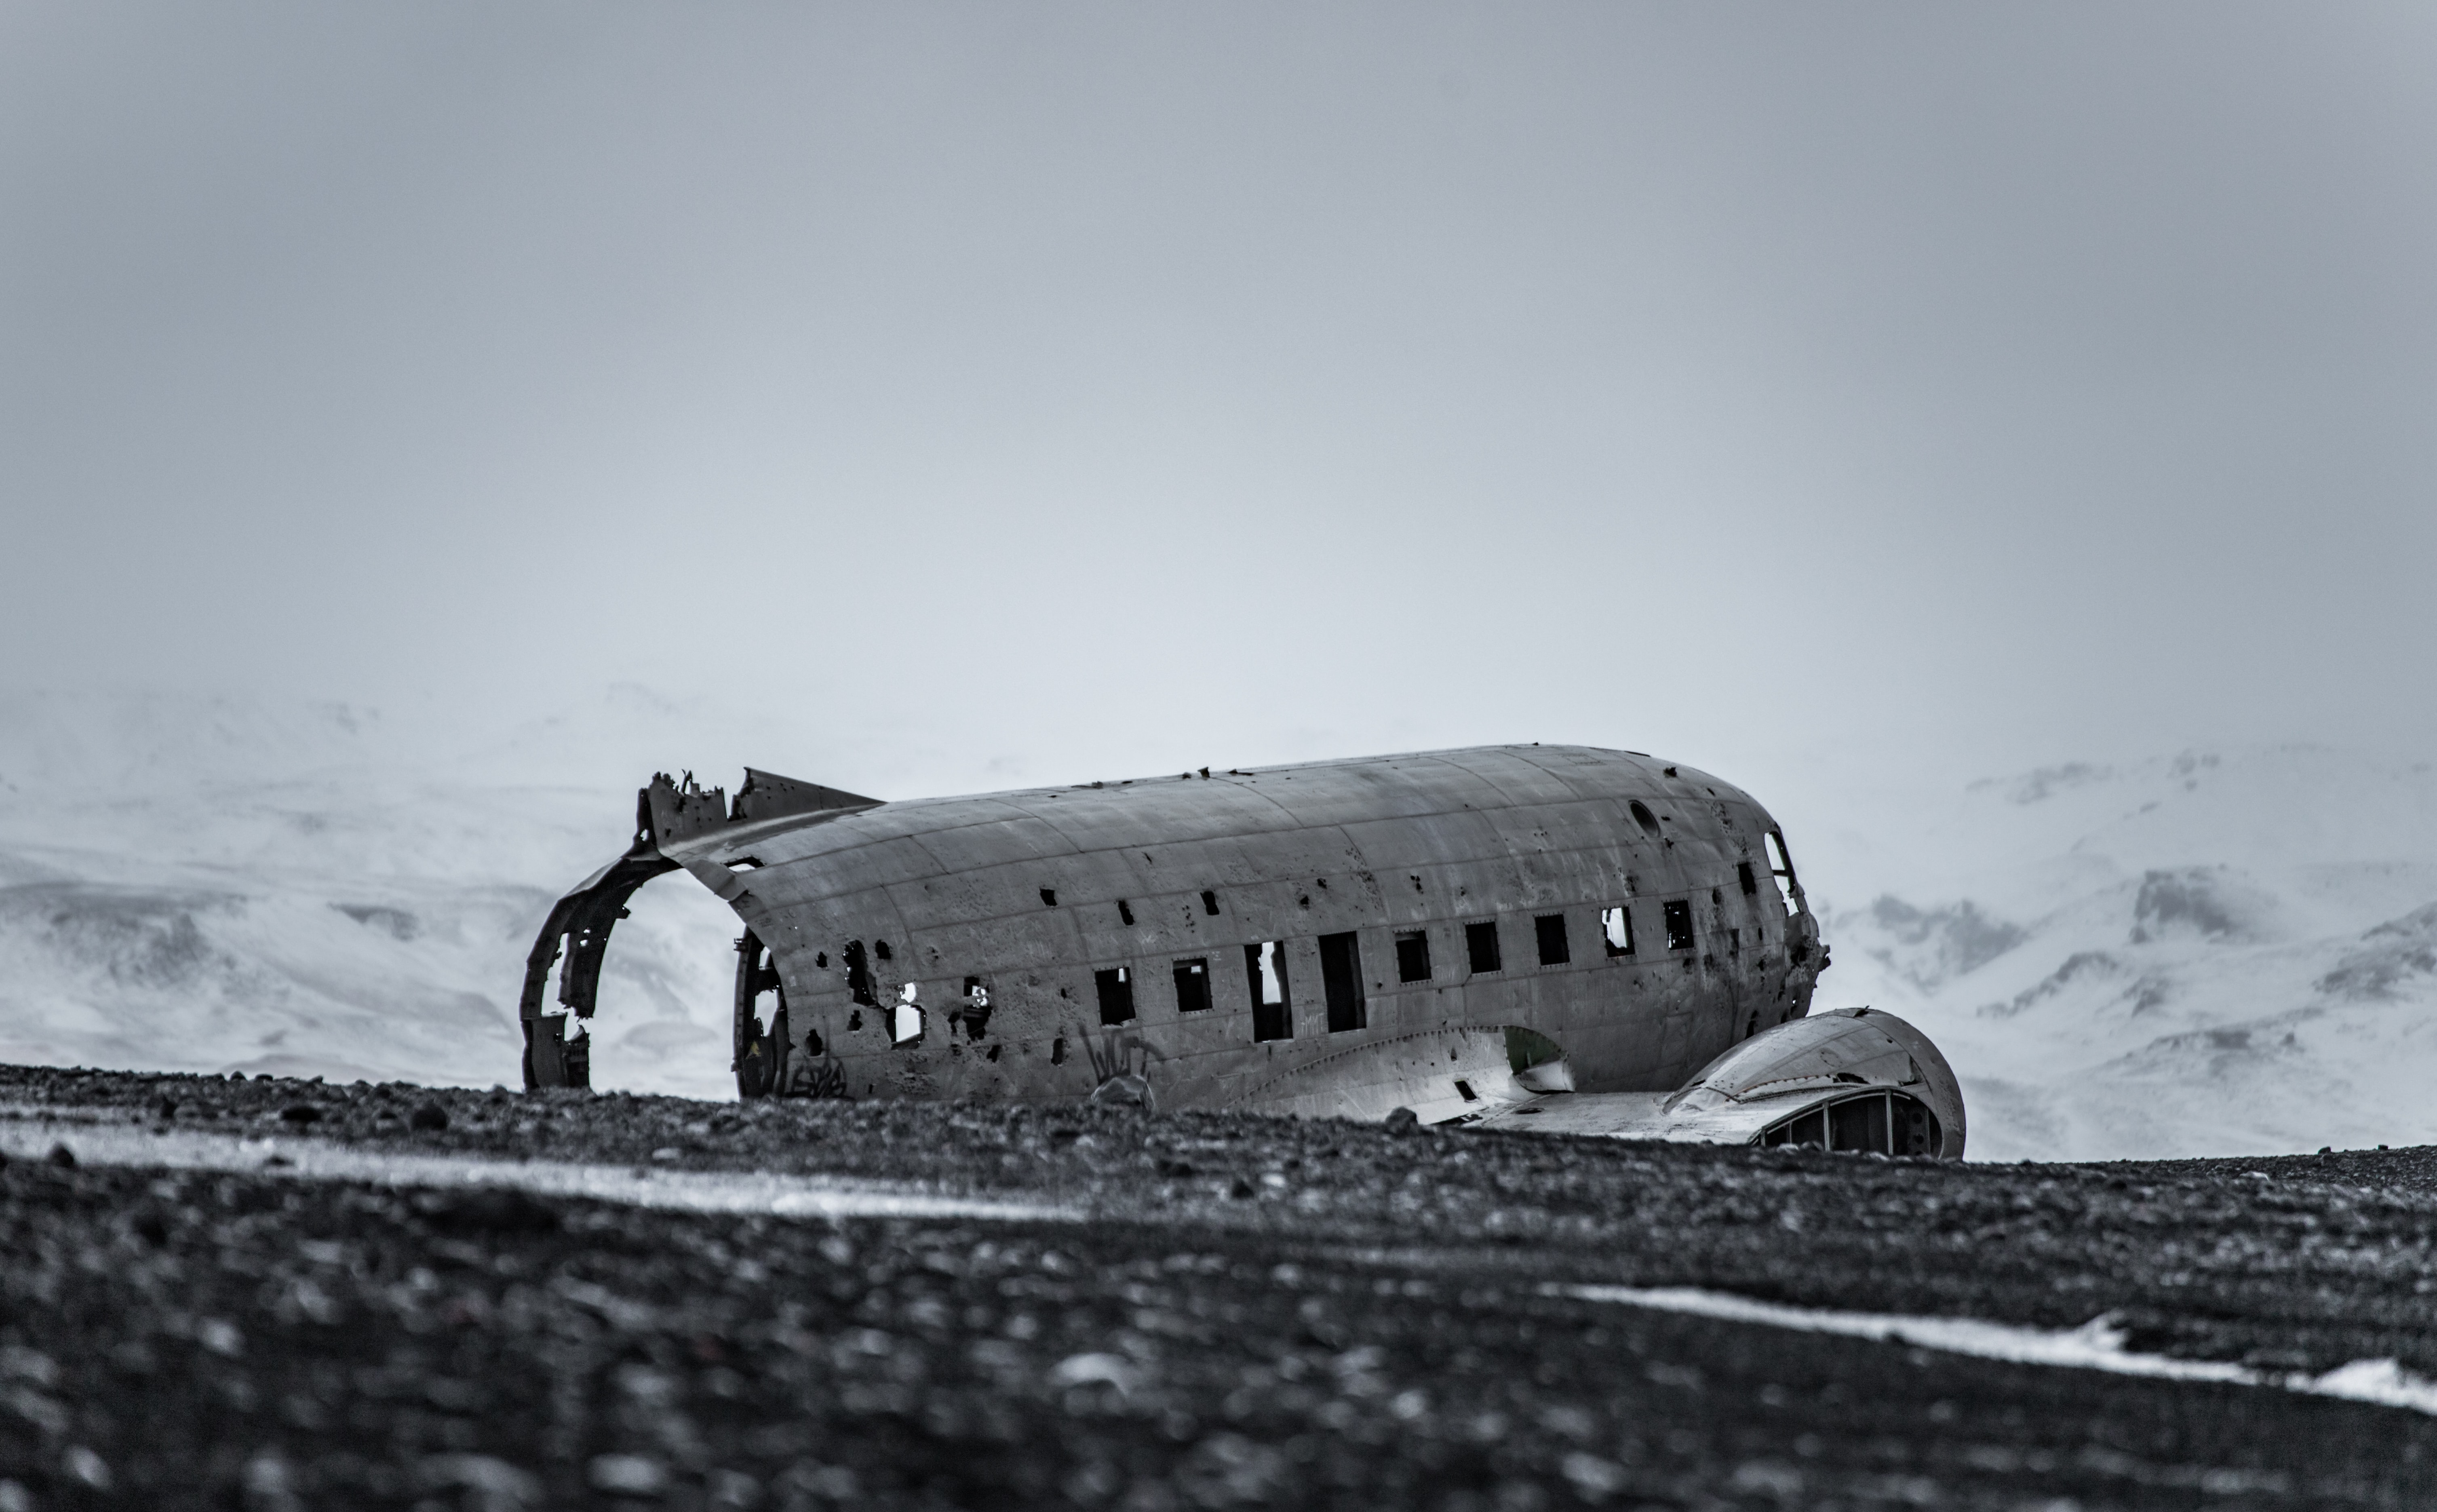 grayscale photography of wrecked airplane